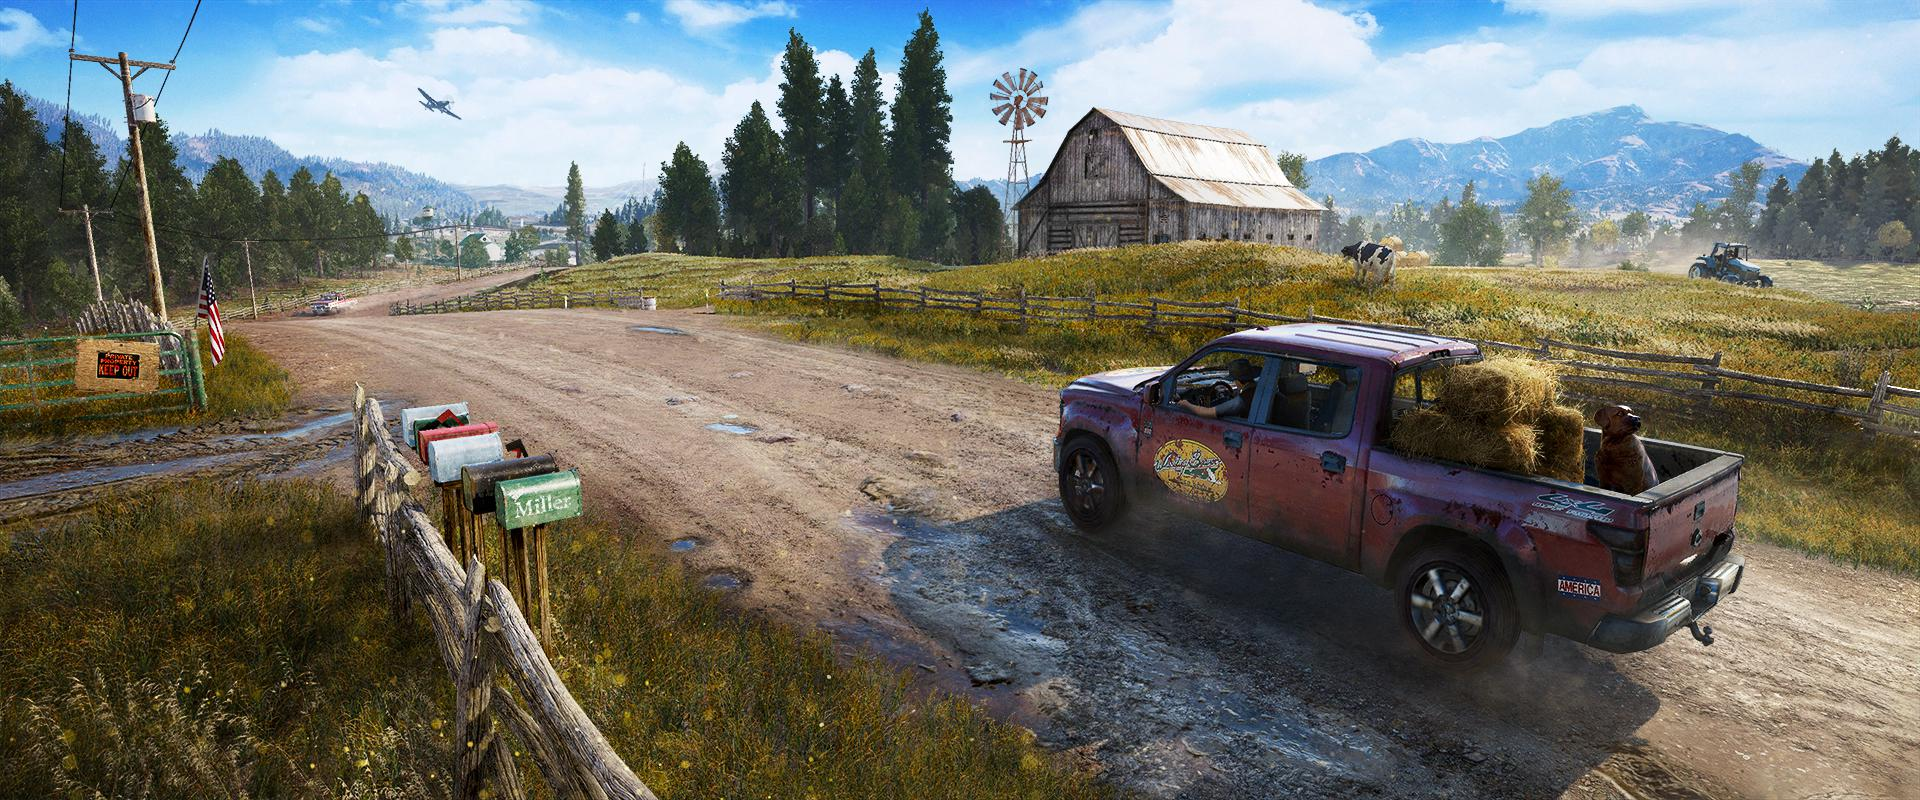 When not fighting you can get behind the wheel of any vehicle and explore the map